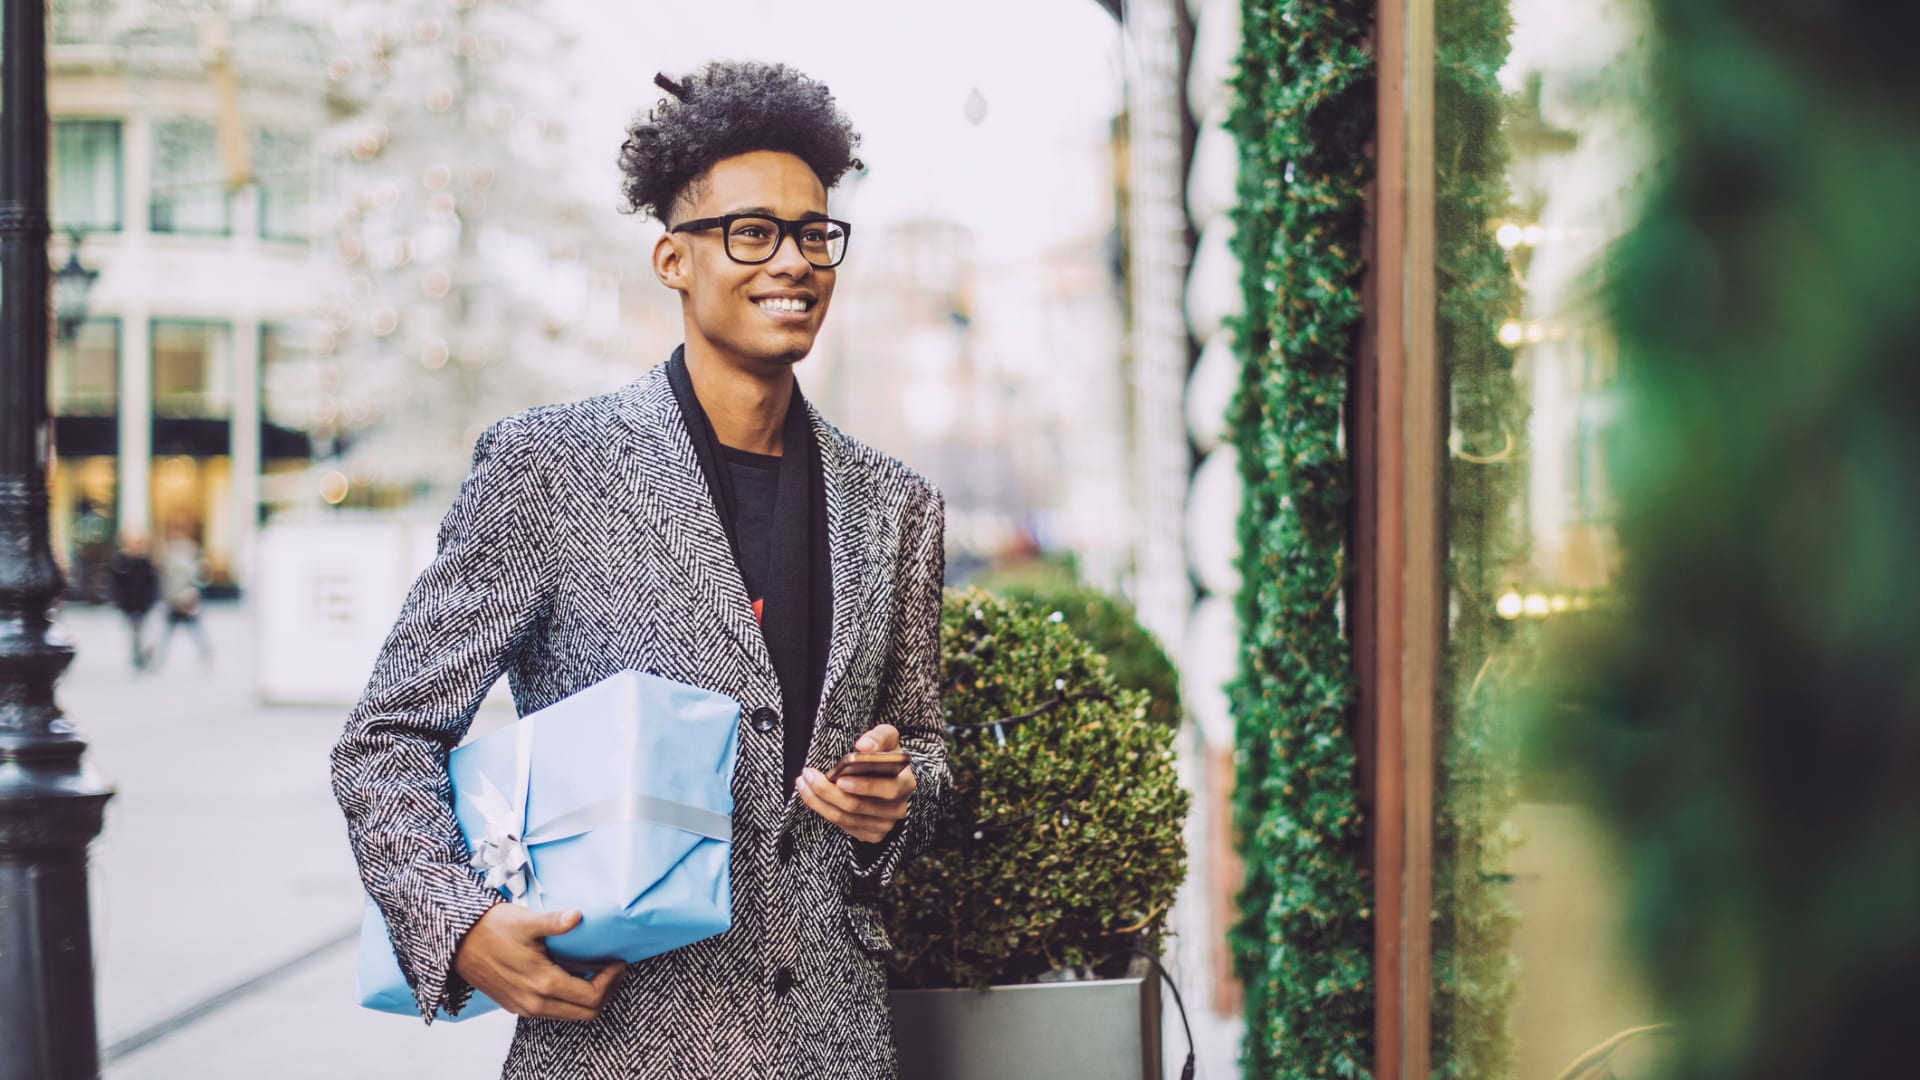 7 Last-Minute Gift Ideas for the Entrepreneur in Your Life